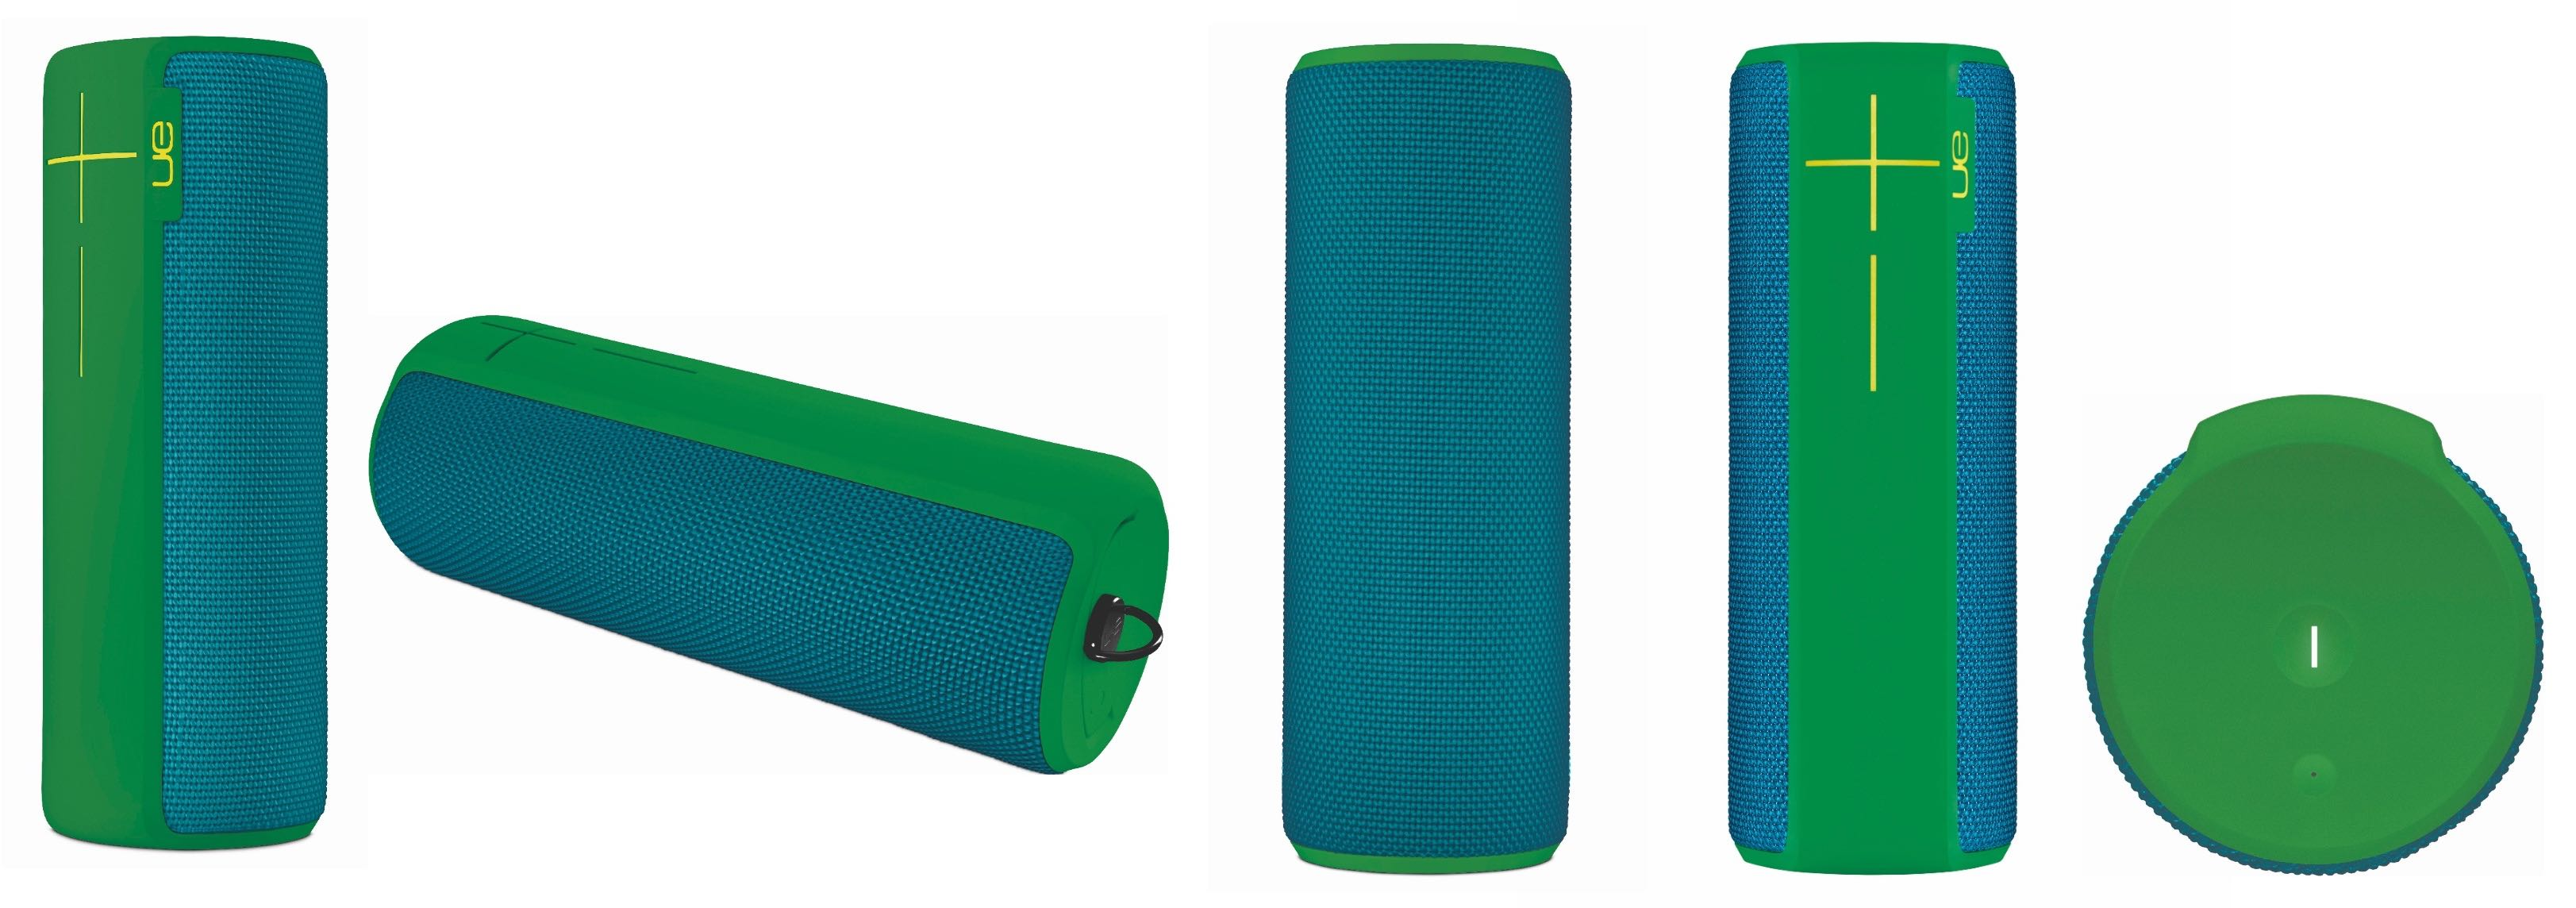 All angles of the Ultimate Ears BOOM 2 speaker